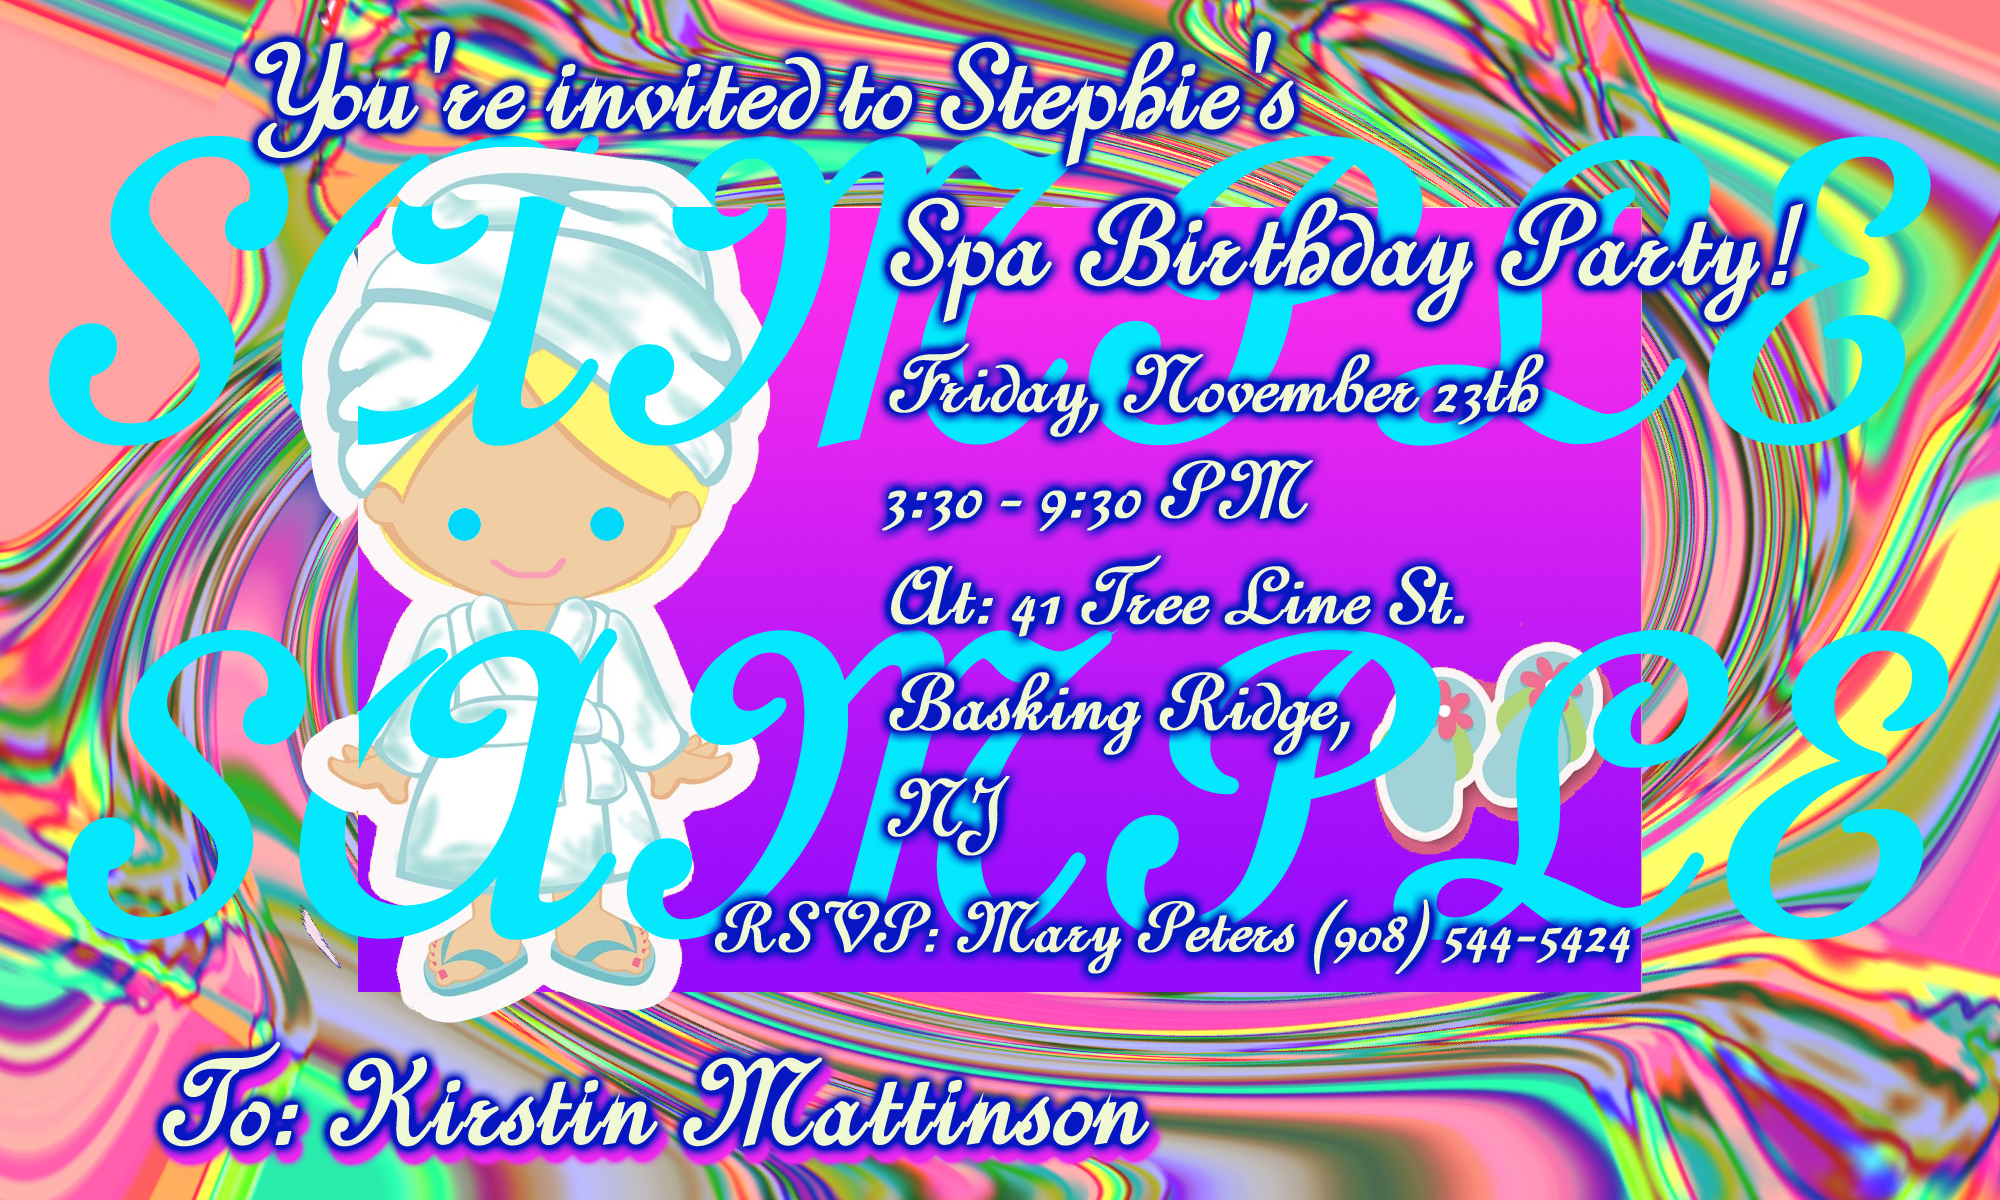 Kids Spa Party Invitation Design - Cartoonish Blonde Spa Girl With Murano Swirled Glass Pattern Background